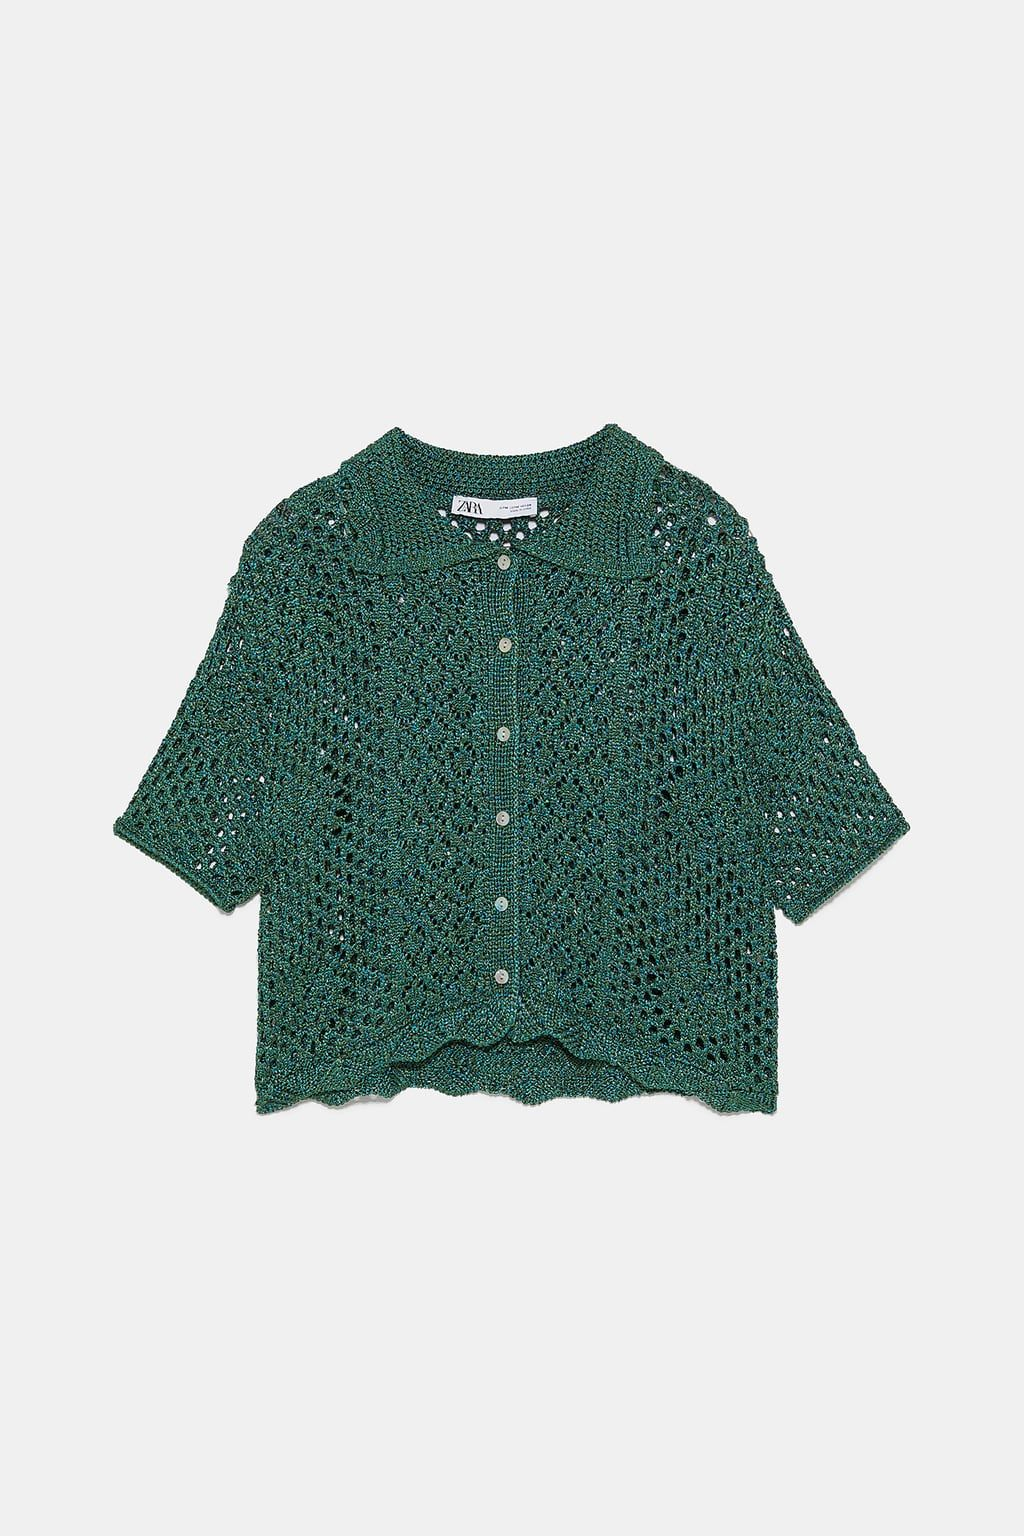 755fd9a30d8f CROCHETED POLO SHIRT  crochet  inspiration  sweaters  fashion  style